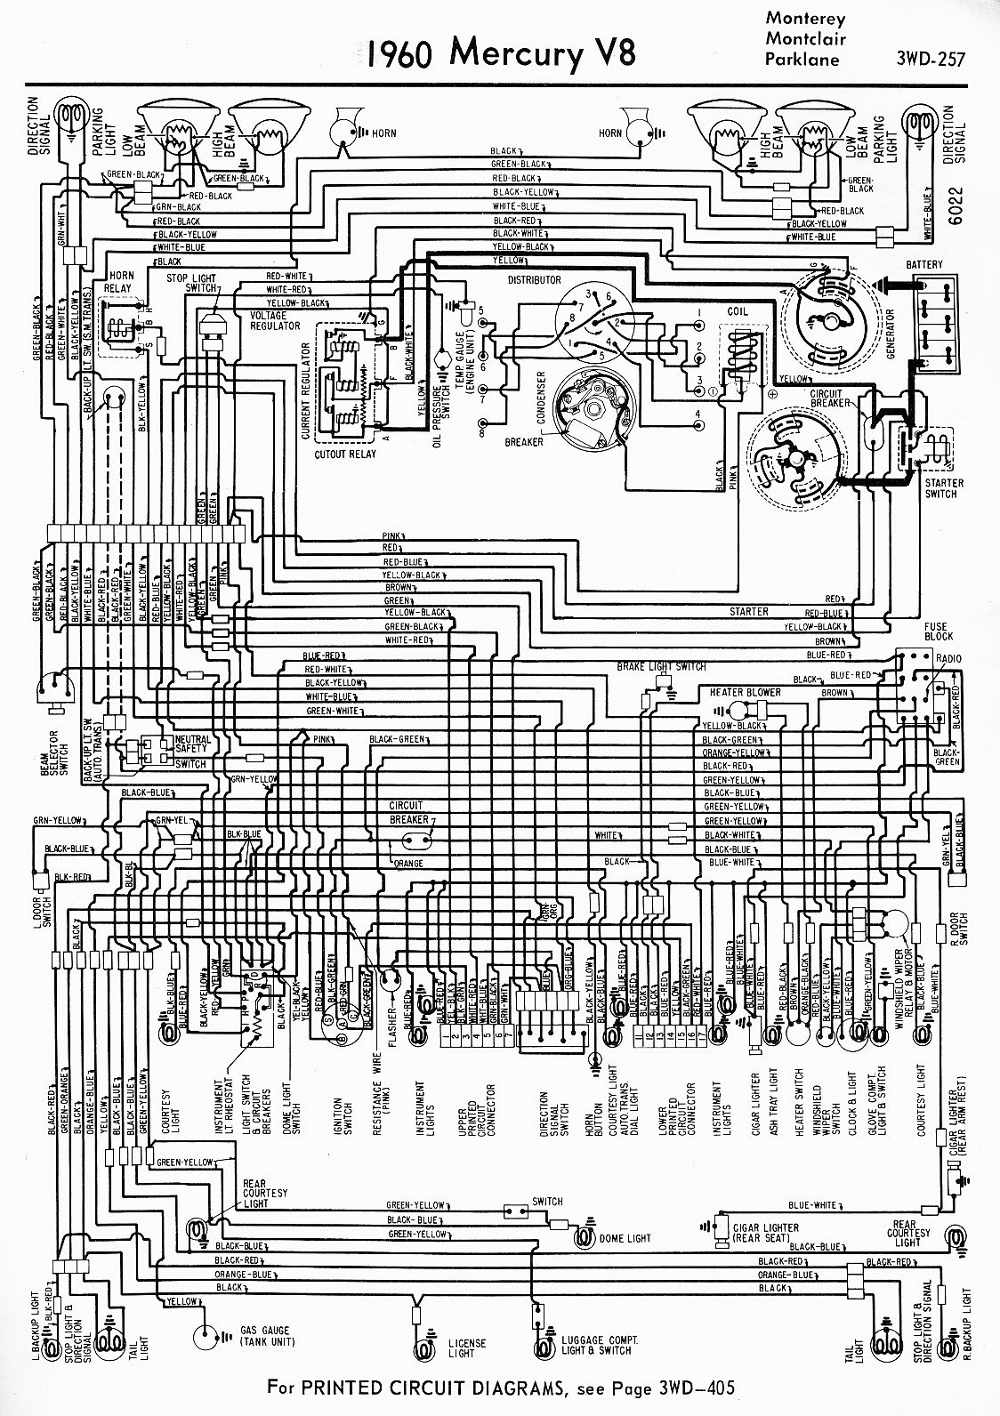 1966 Mercury Wiring Diagram Diagrams Schematic Grand Marquis Data 1969 Lincoln 1954 Monterey